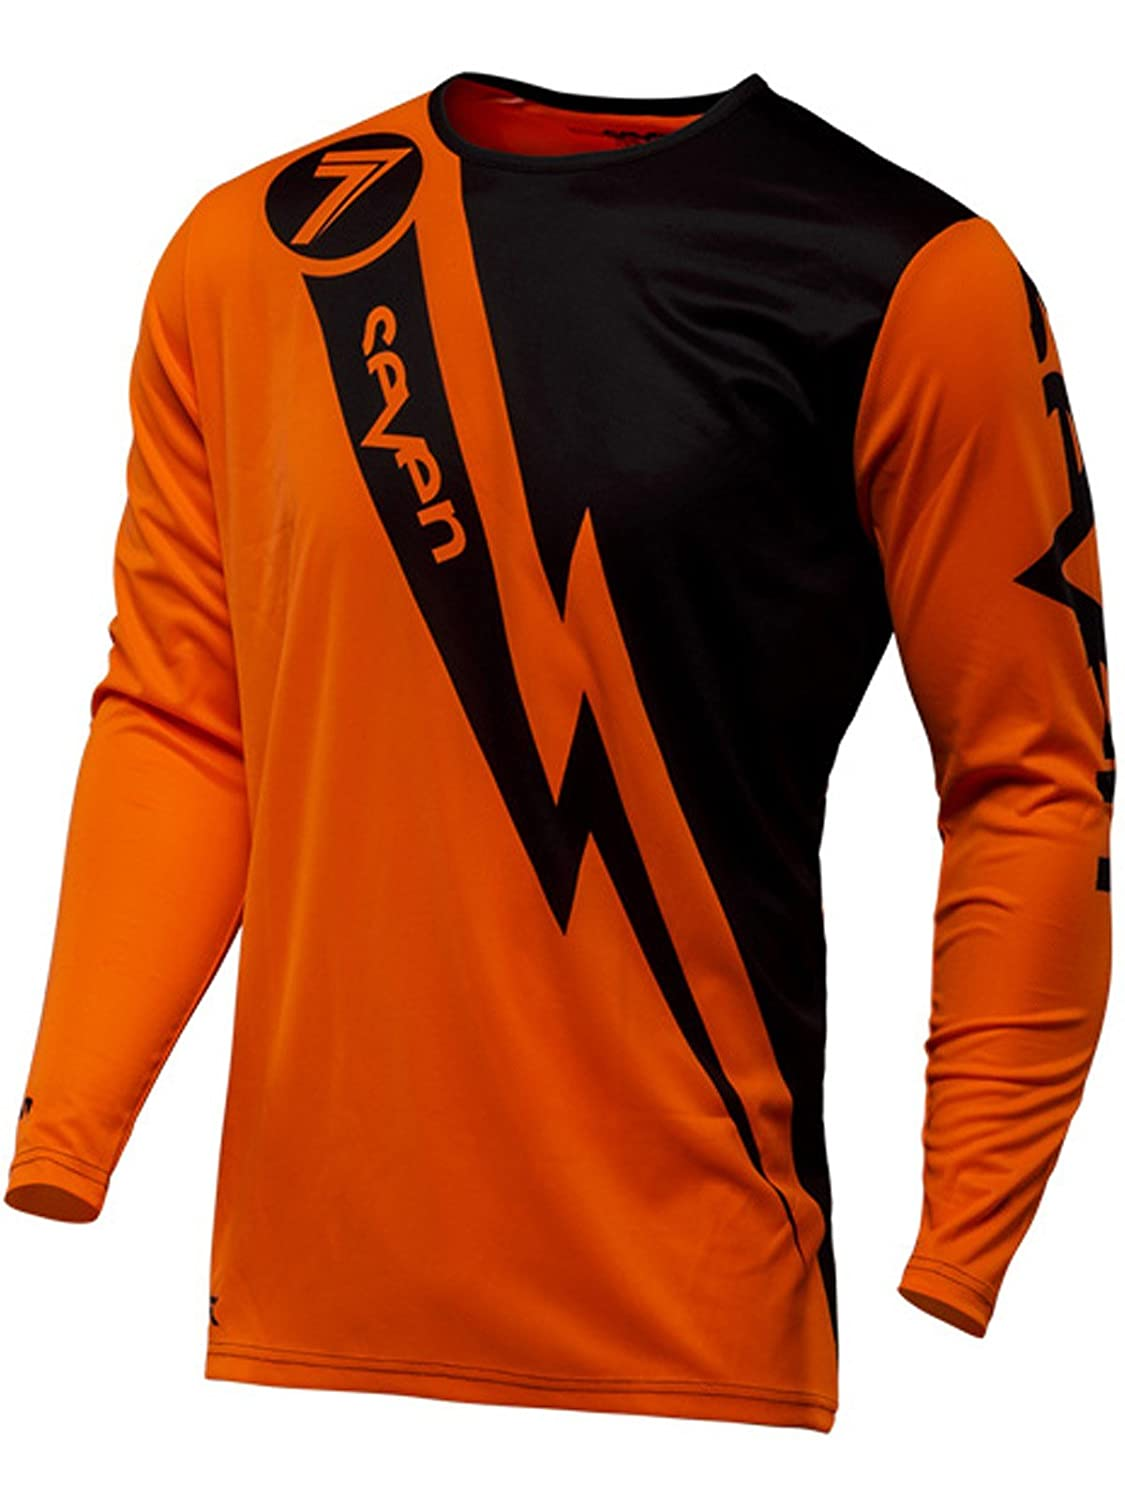 Seven Annex Volt Boys Off-Road Motorcycle Jersey Flow Orange//Small SE 2250012-801-YS